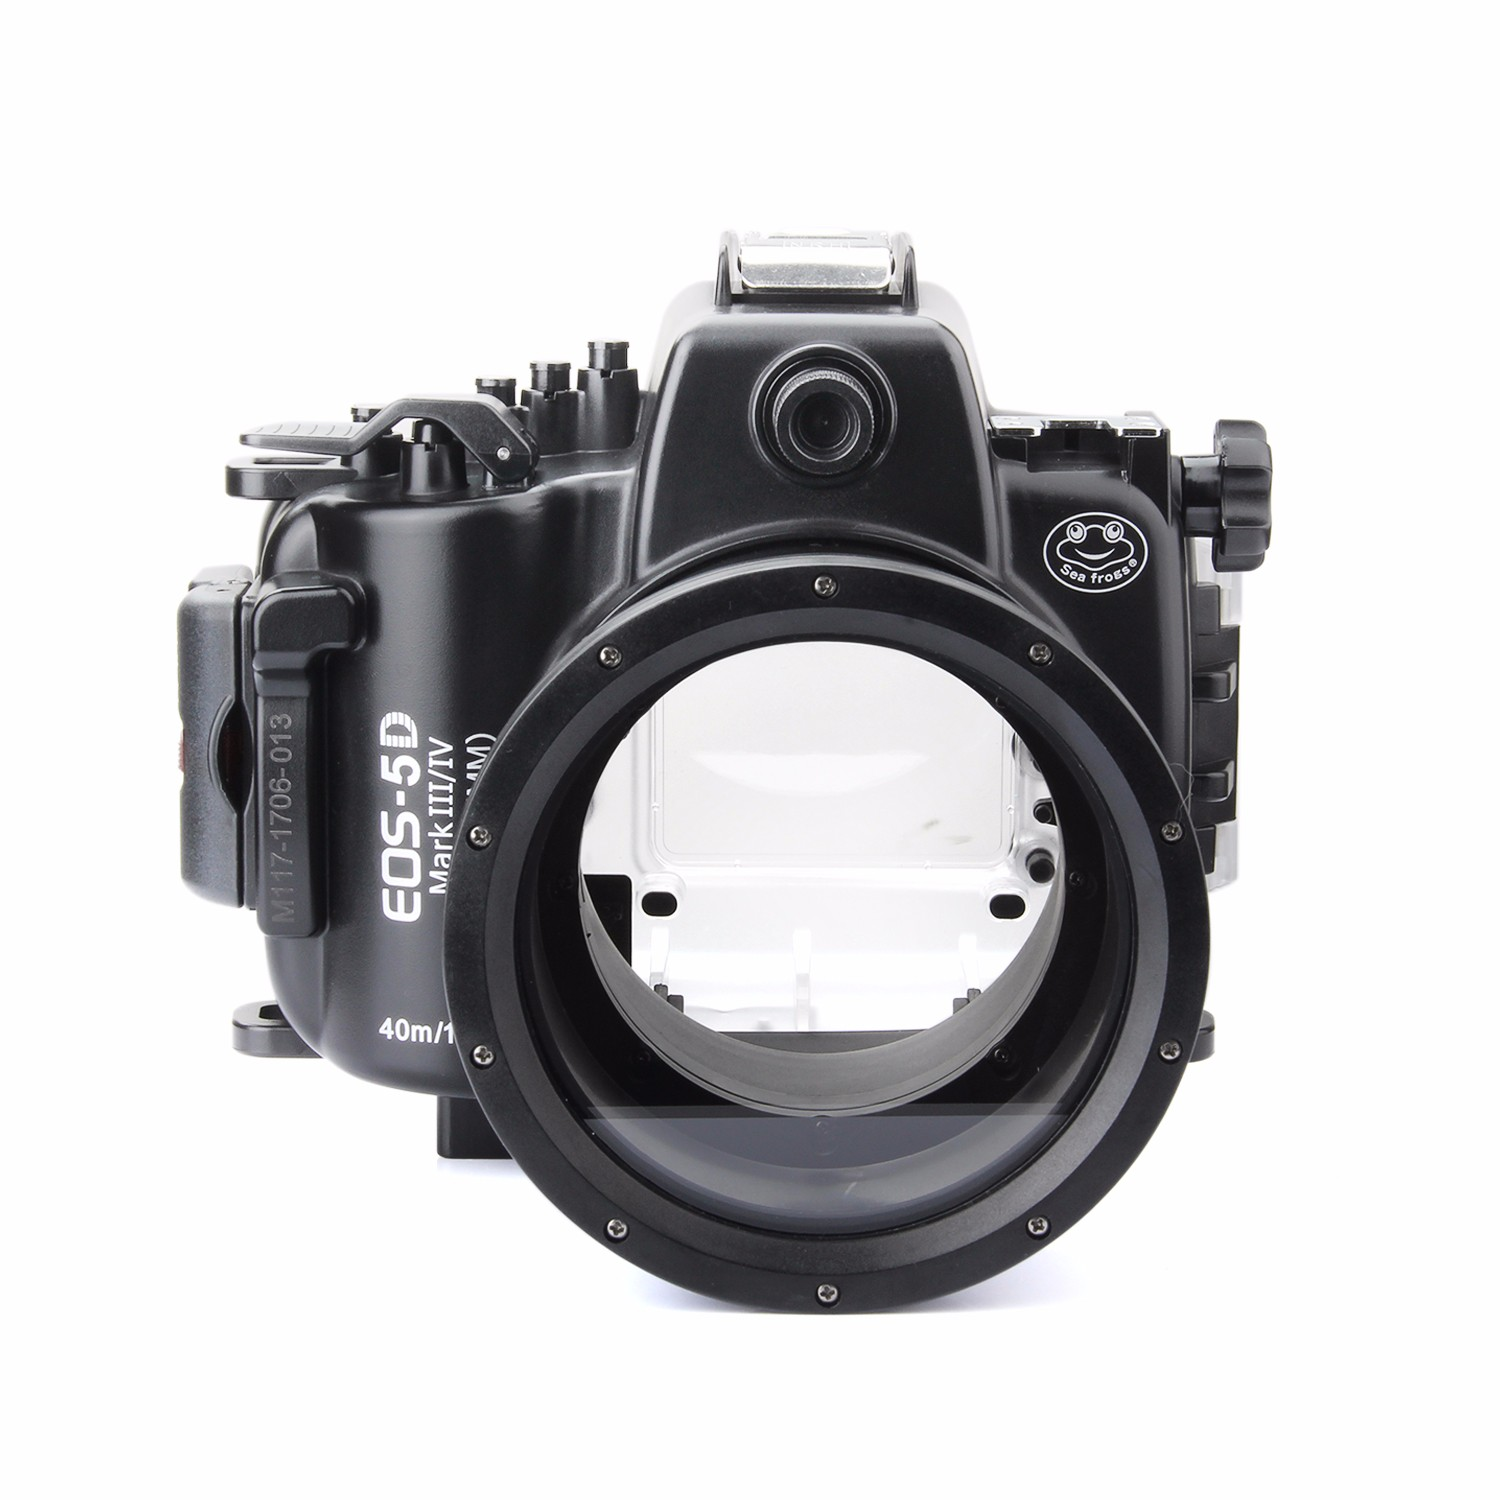 SeaFrogs 5D4 5D IV 40M 130ft Diving Waterproof Housing Case for Canon 5D III IV 5D3 5D4 Supports 24-105mm Lens + WA-1 Fisheye леонид лазарев без пудры и грима